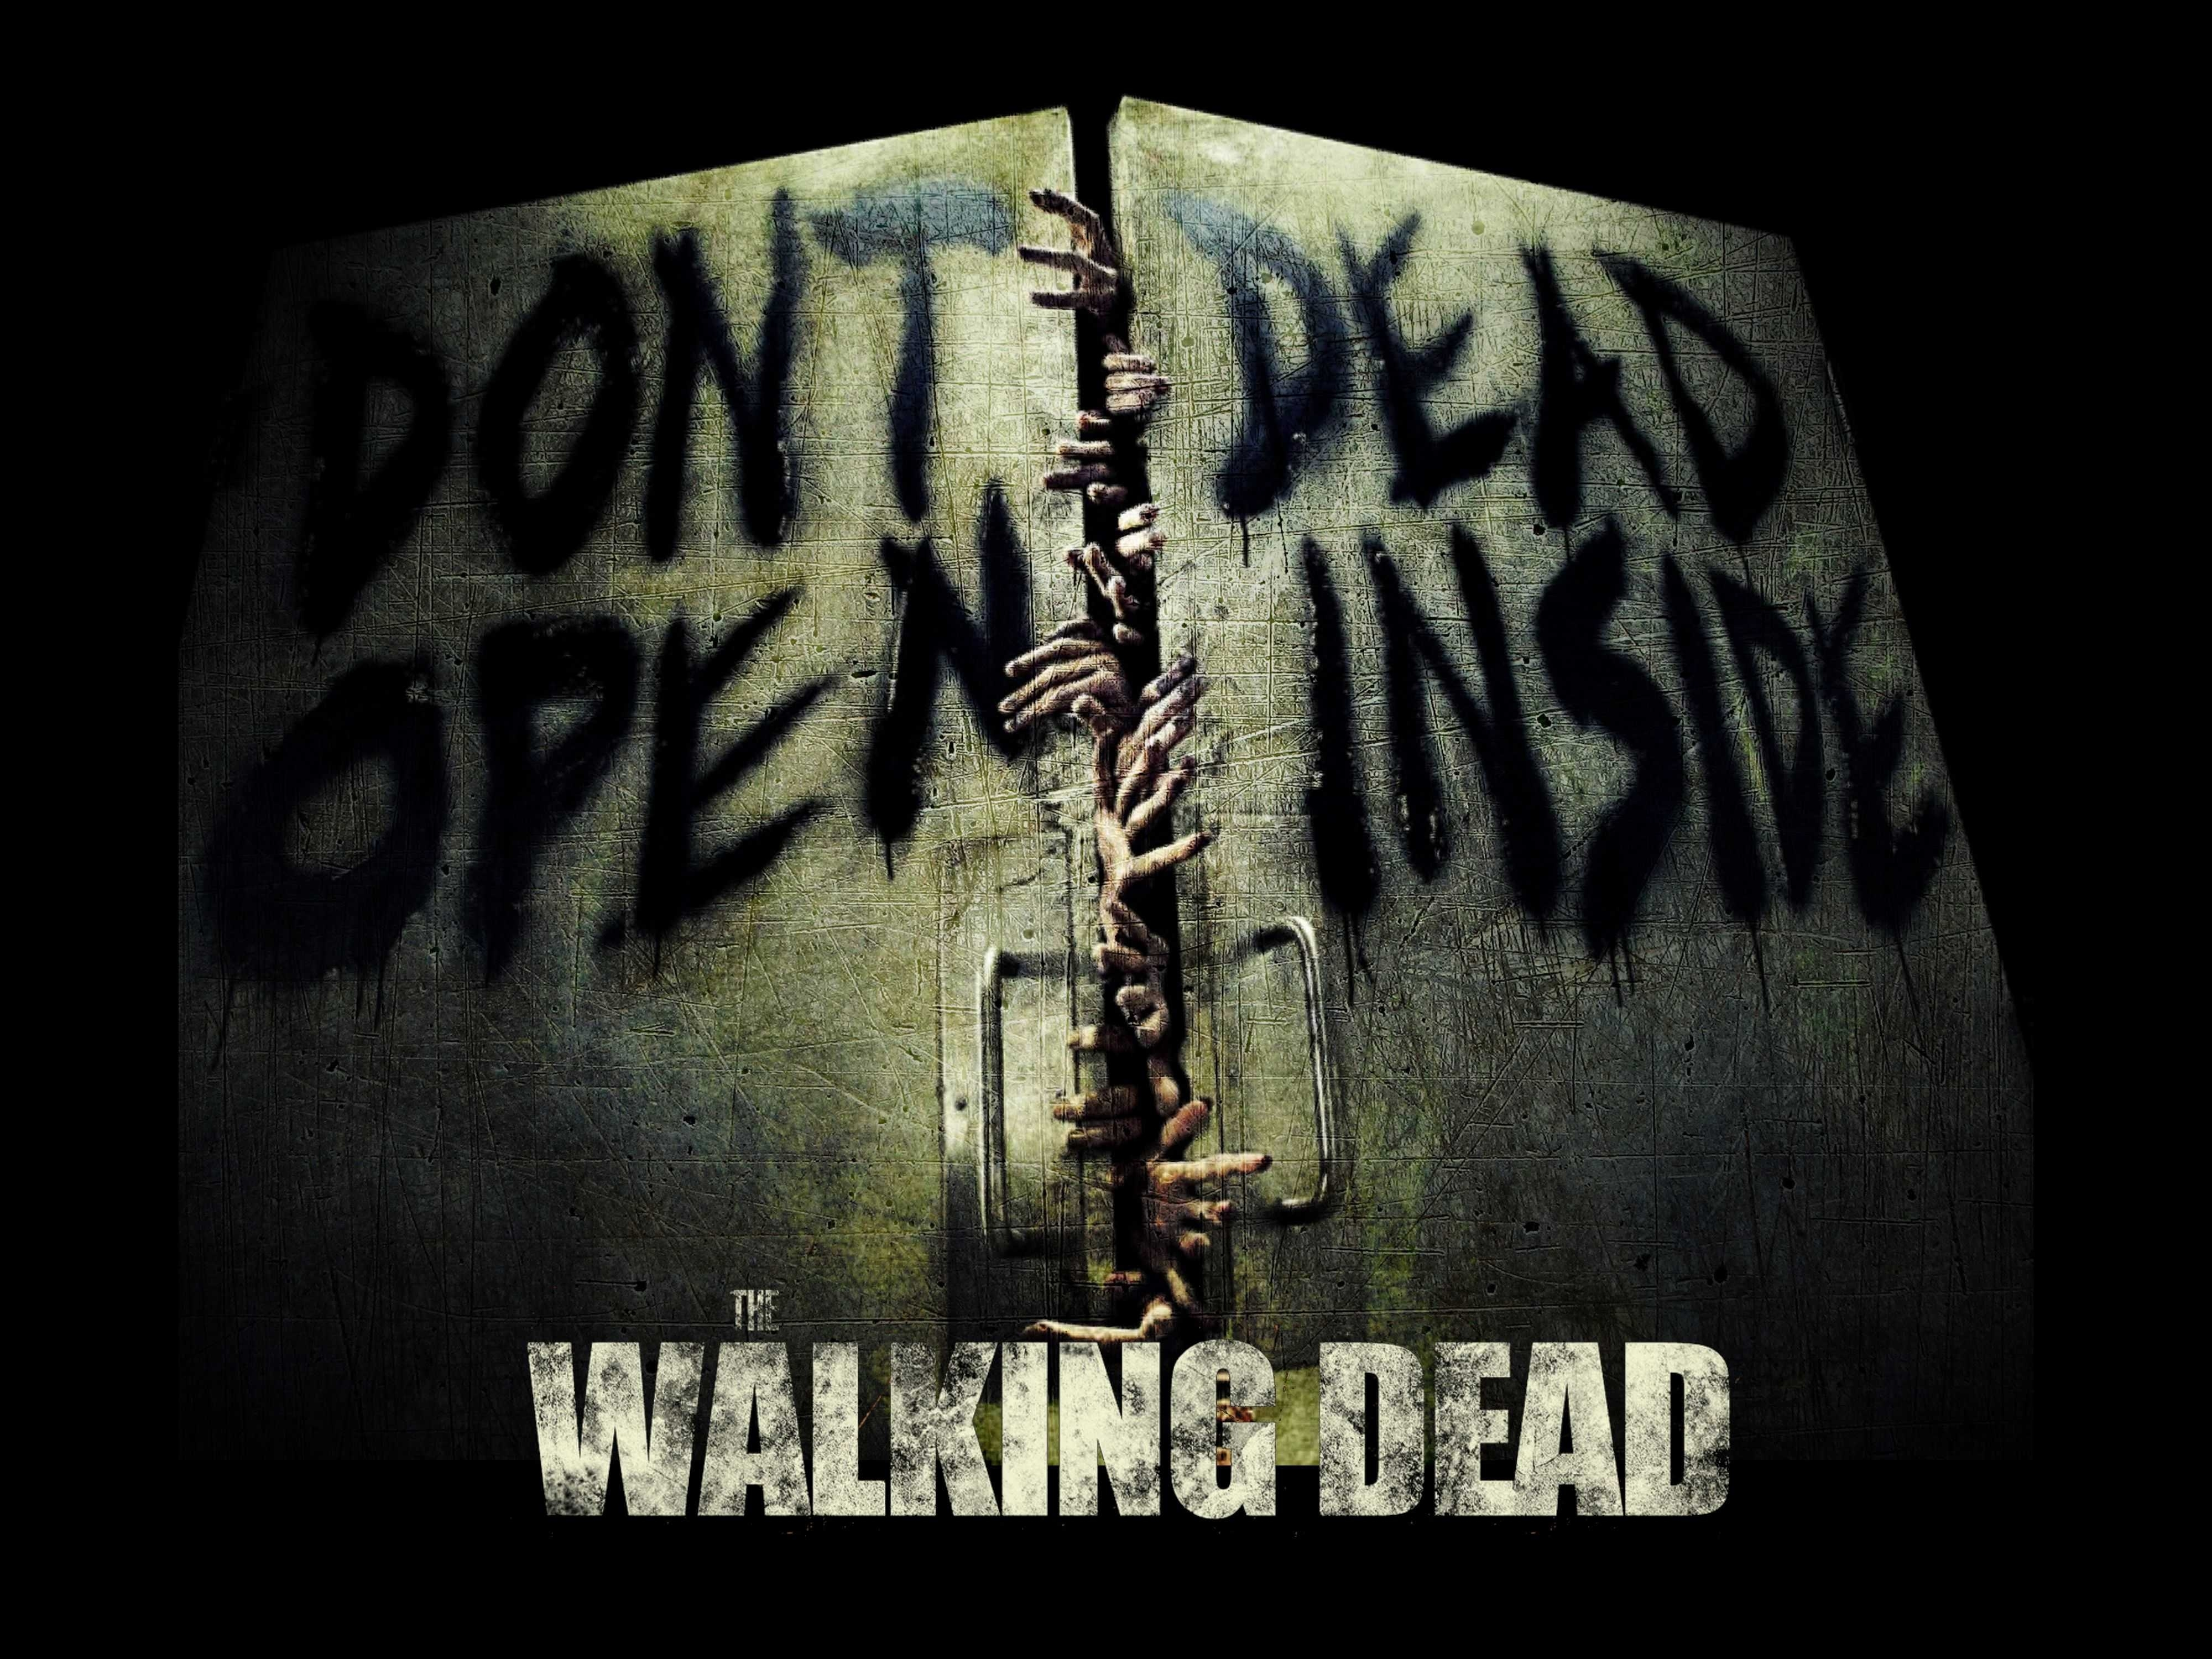 the walking dead hd pics full wallpaperbest latest for mobile ~ waraqh